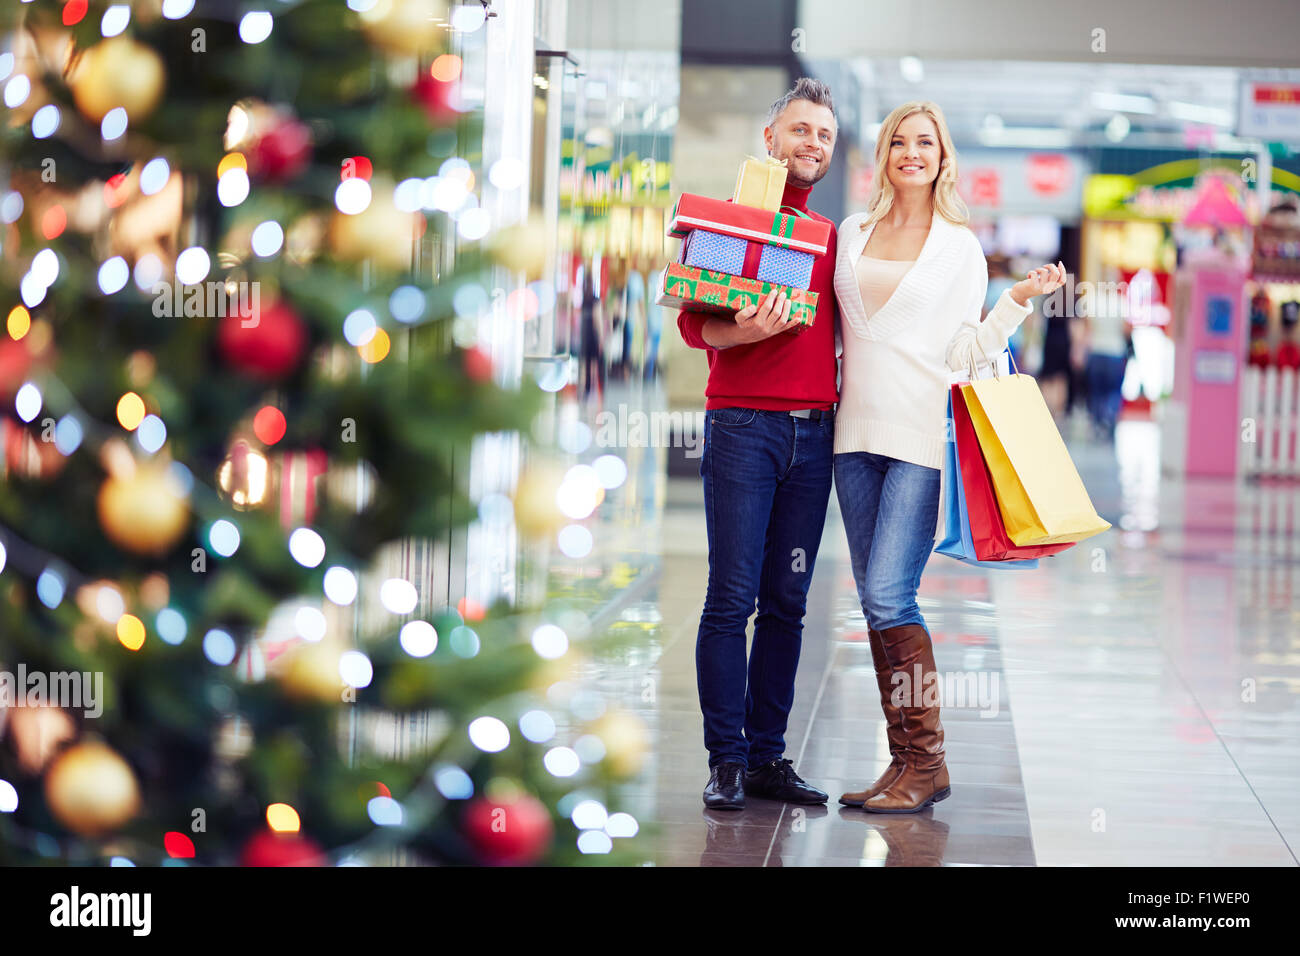 Affectionate couple with gifts shopping in the mall before Christmas - Stock Image